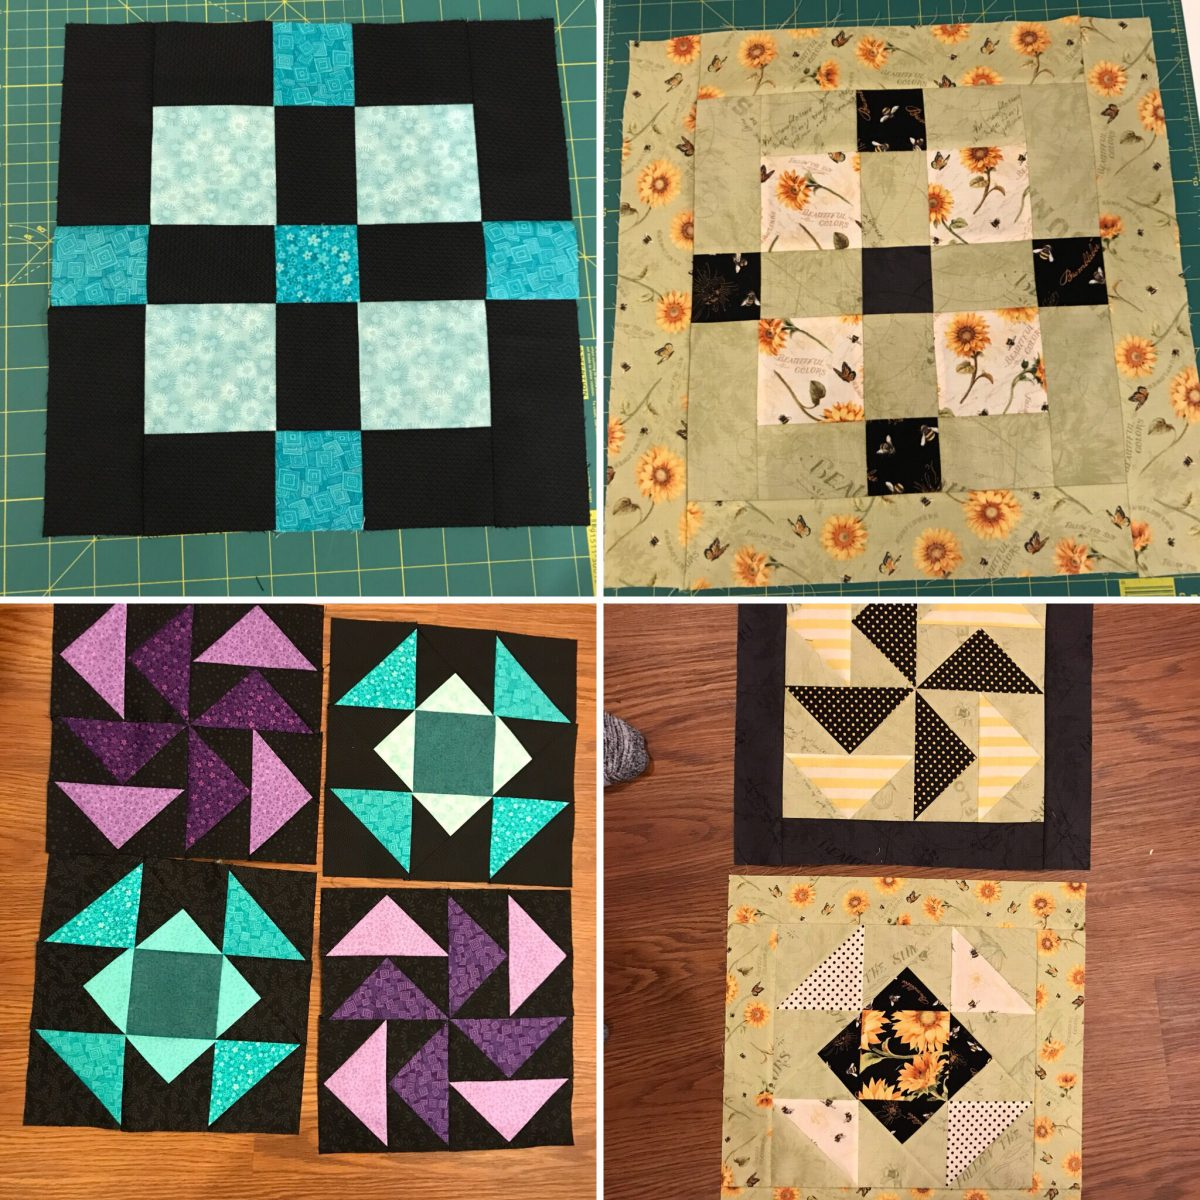 Quilt Diary: March 12 Update on quarter goals